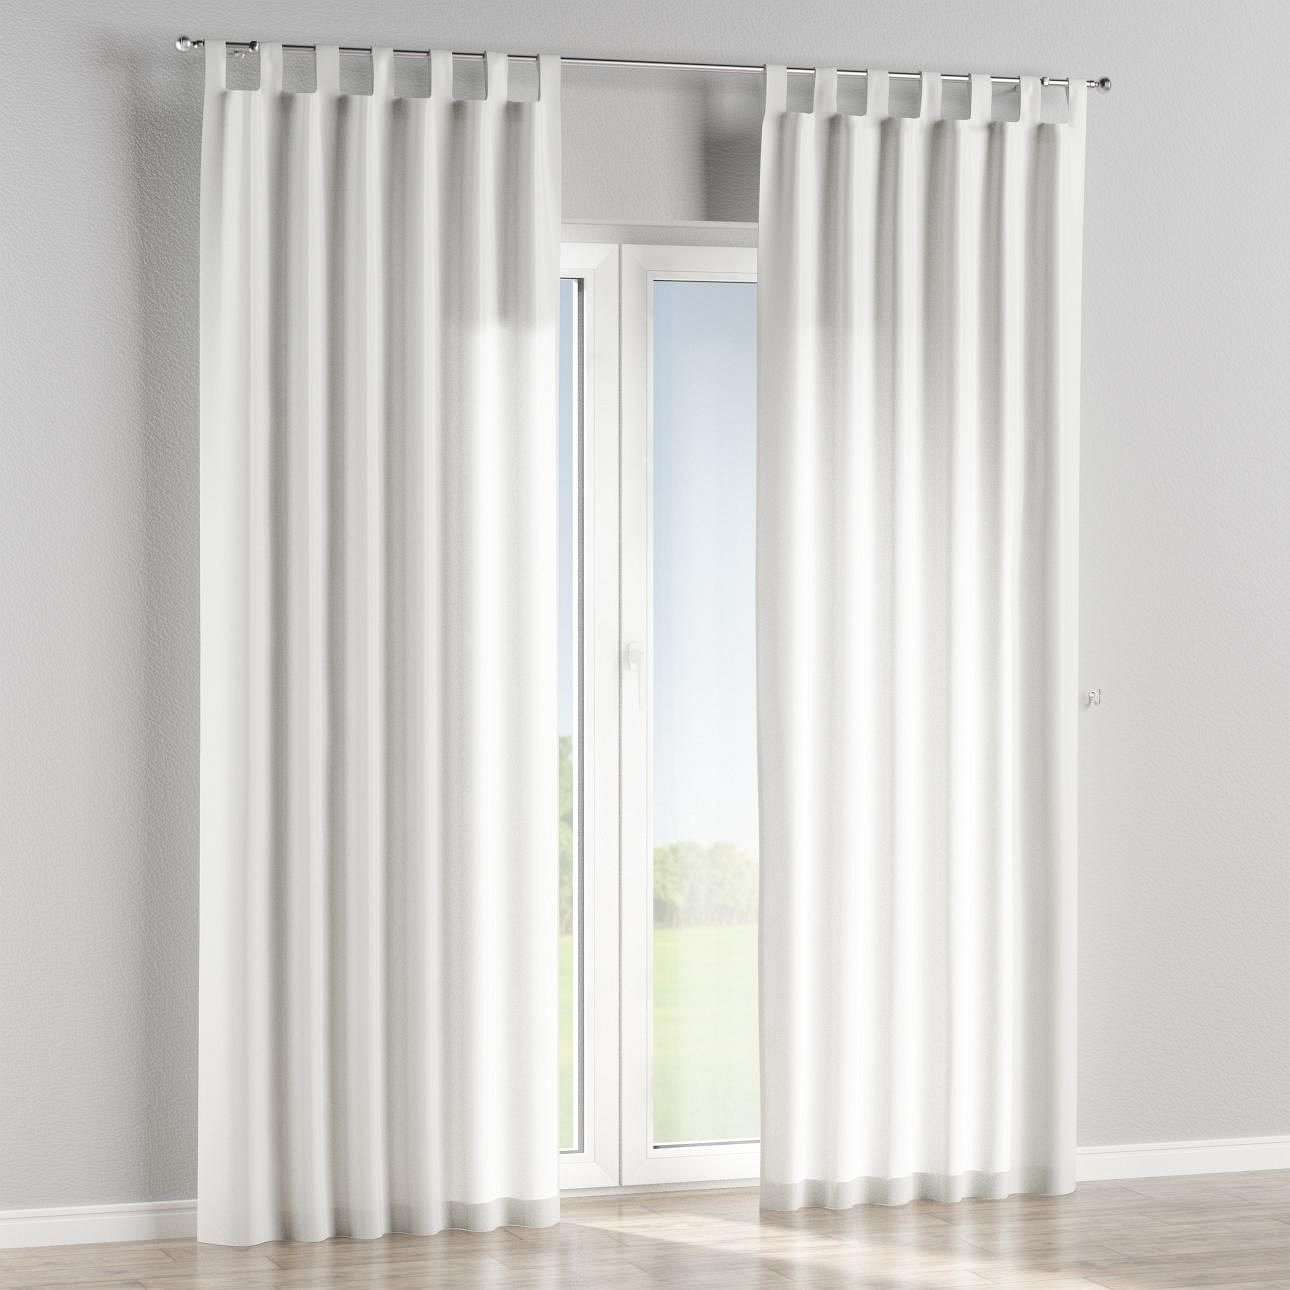 Tab top curtains in collection SALE, fabric: 104-19